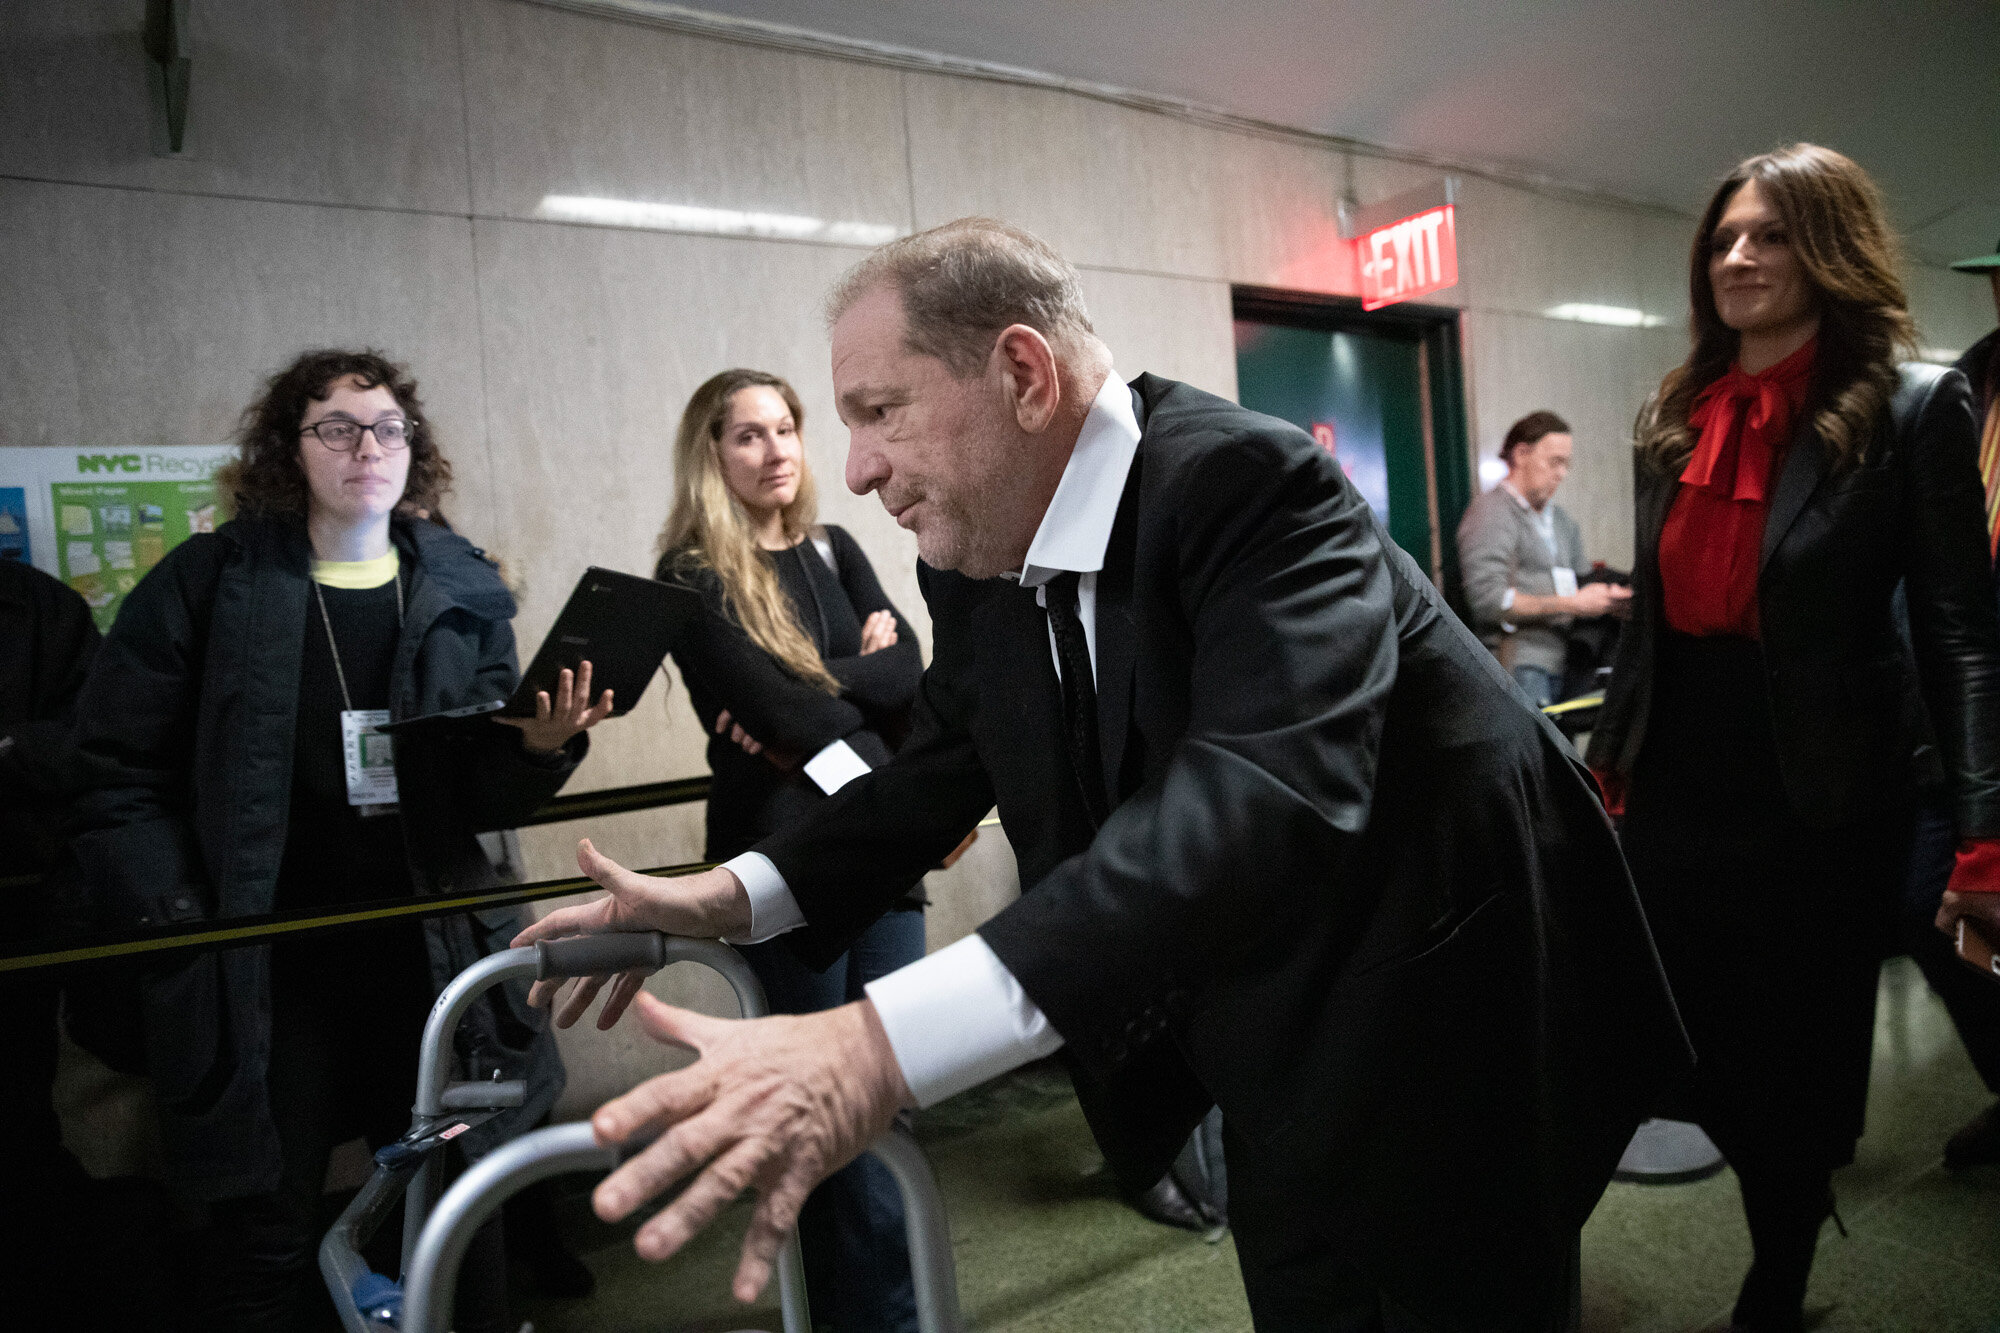 Hollywood film producer Harvey Weinstein leaves court in New York on Jan. 10, 2020,  after attending jury selection for his sexual assault trial. (AP Photo/Mark Lennihan)